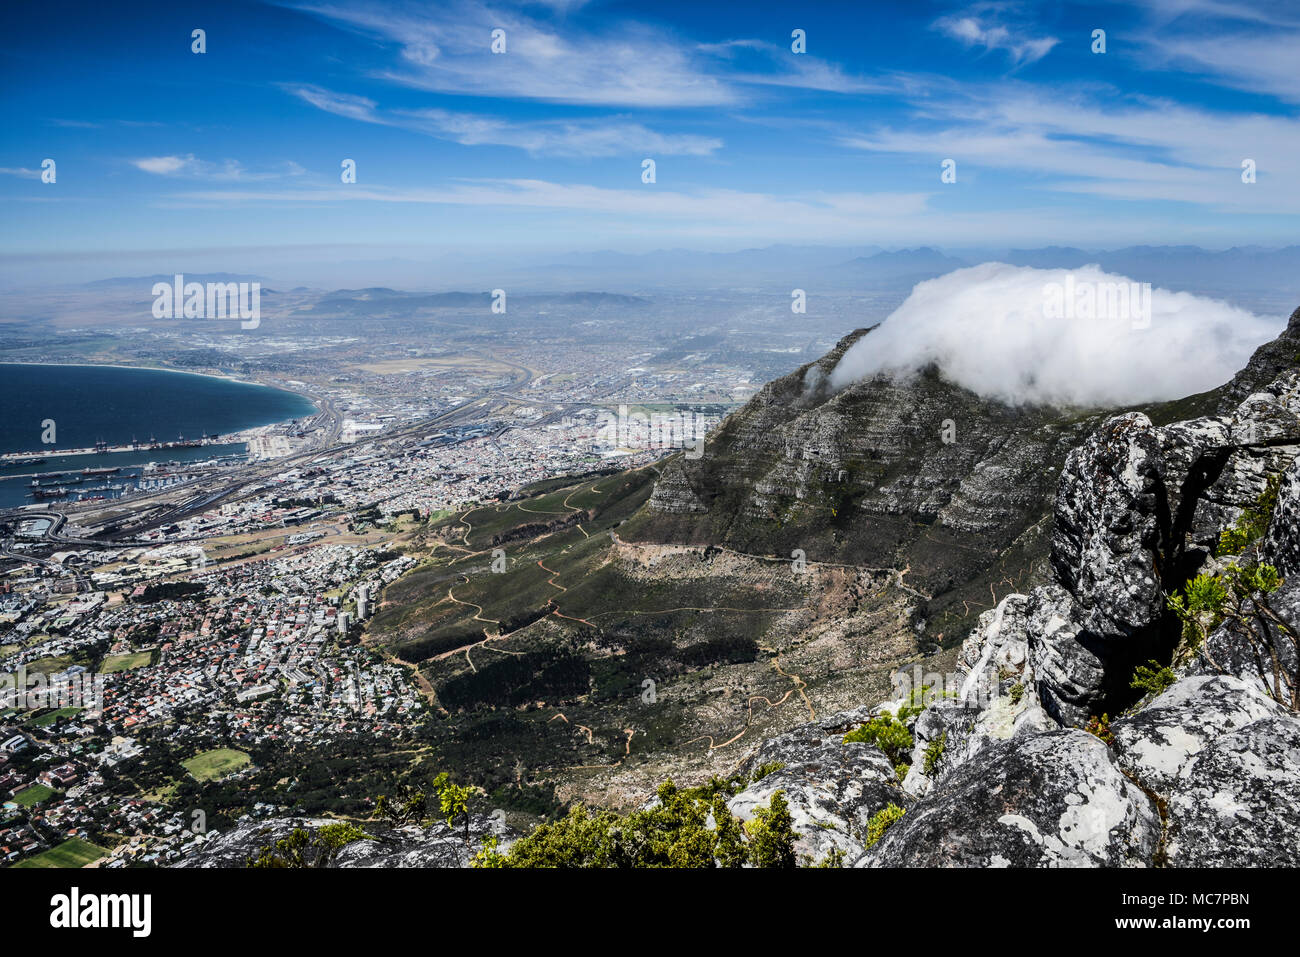 Cloud sitting on top of Devil's Peak seen from Table Mountain, Cape Town, South Africa - Stock Image